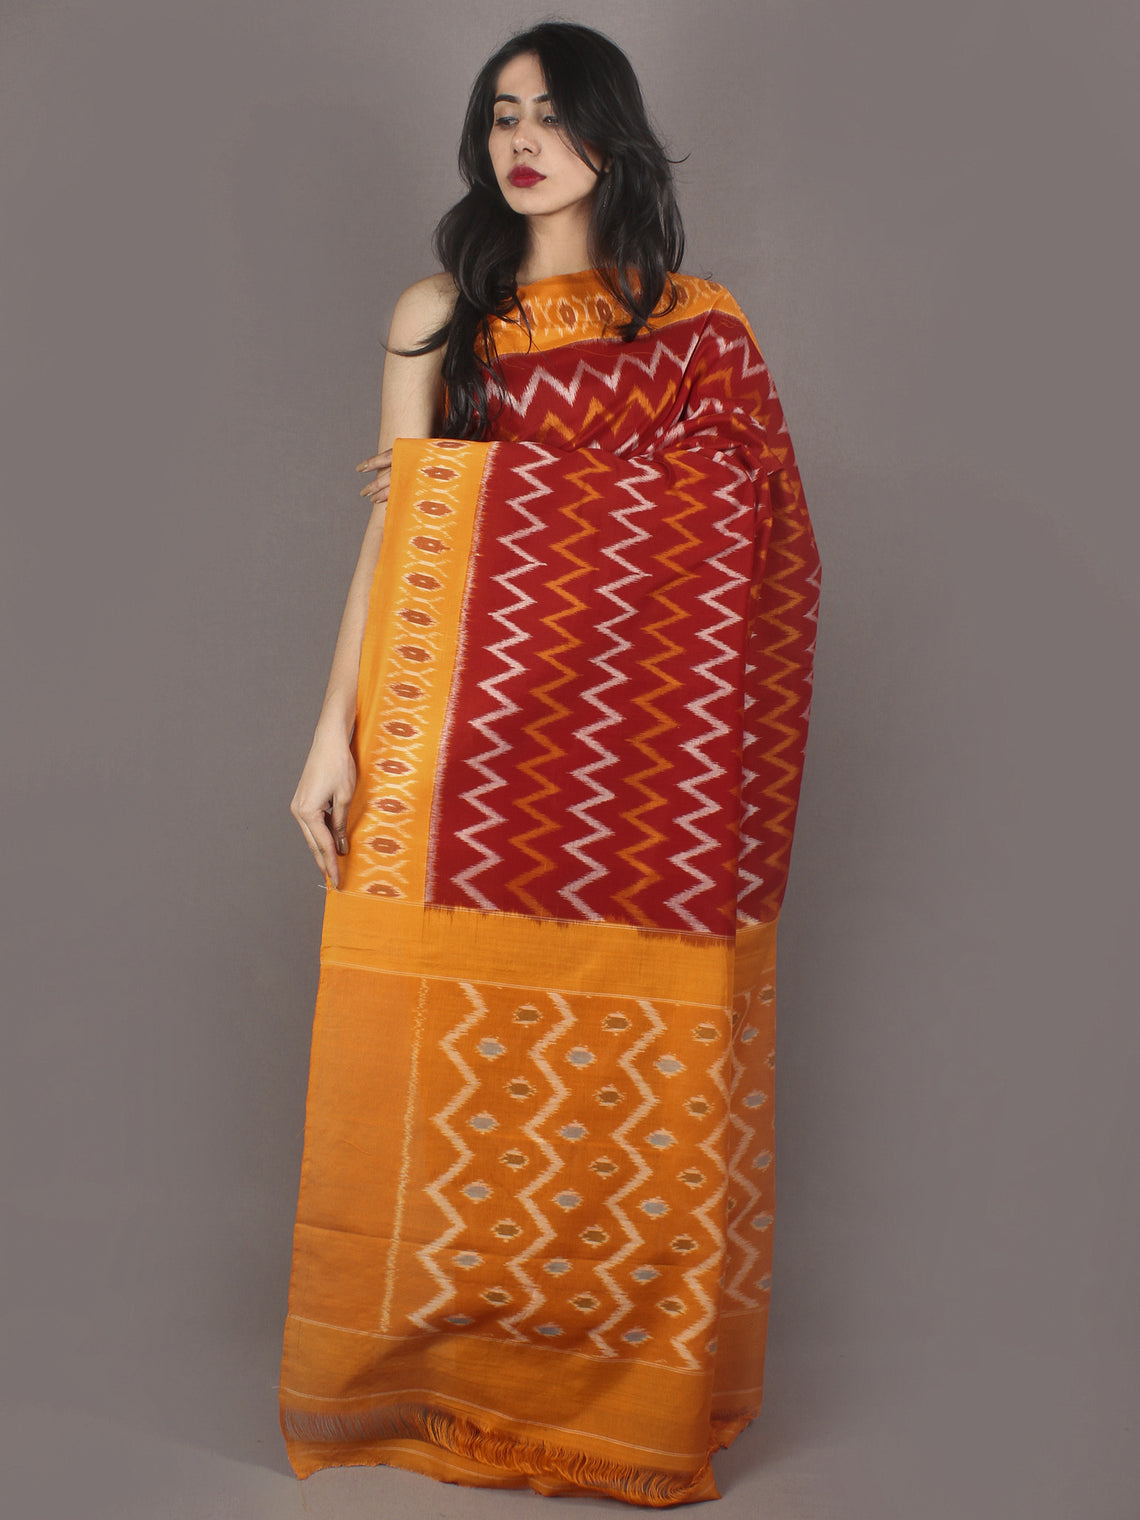 Red Yellow Ivory Ikat Handwoven Pochampally Cotton Saree - S031701070